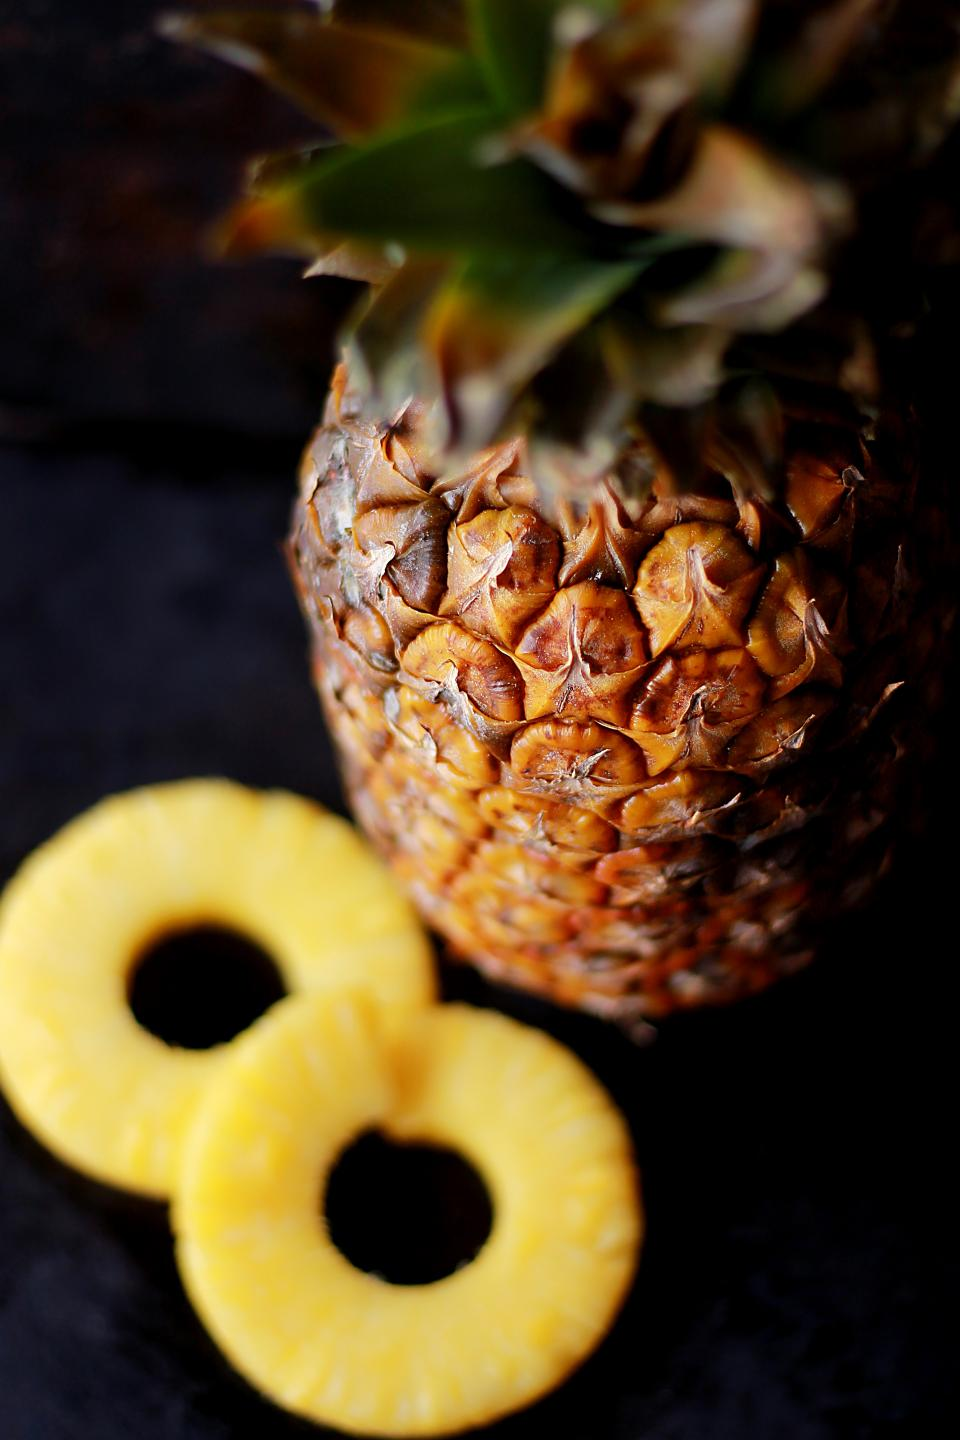 Free stock photo of pineapple fruit